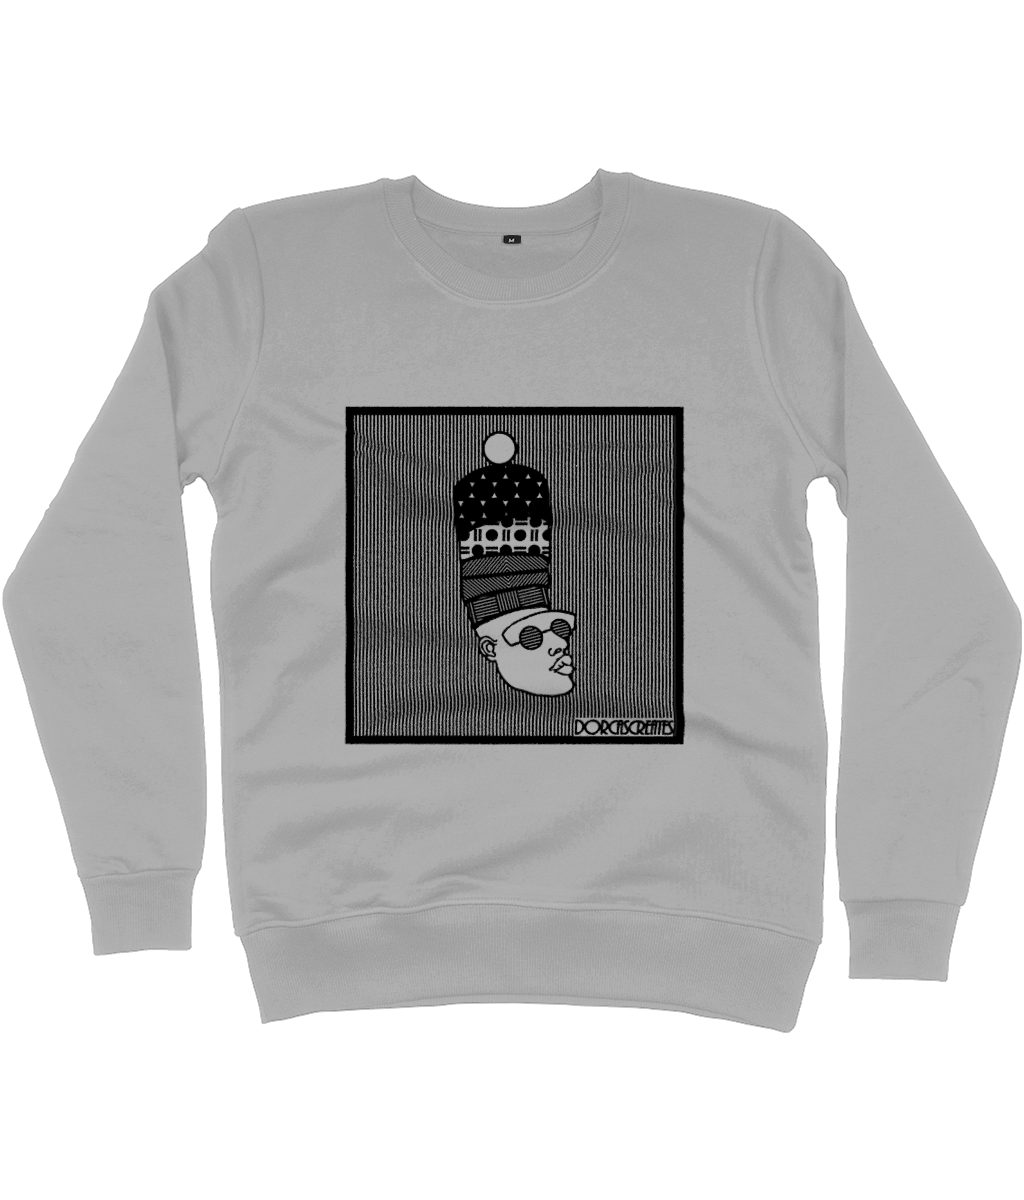 Grey Sweatshirt featuring illustration of black man by DorcasCreates